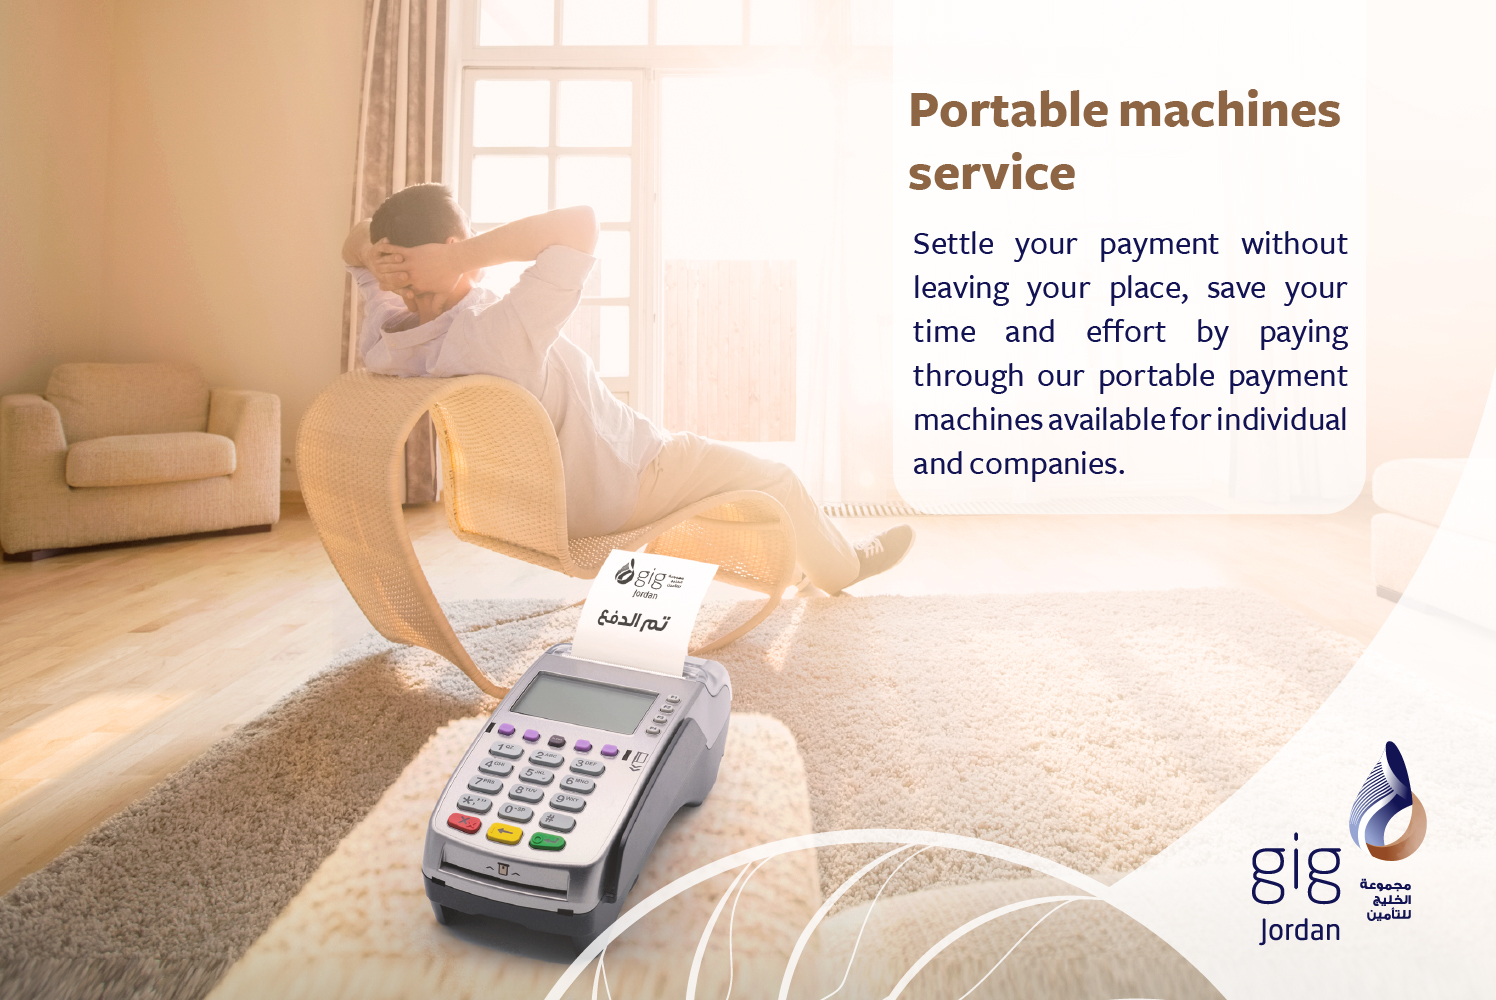 A New Payment Service Through Portable Machines Offered By Gig - Jordan